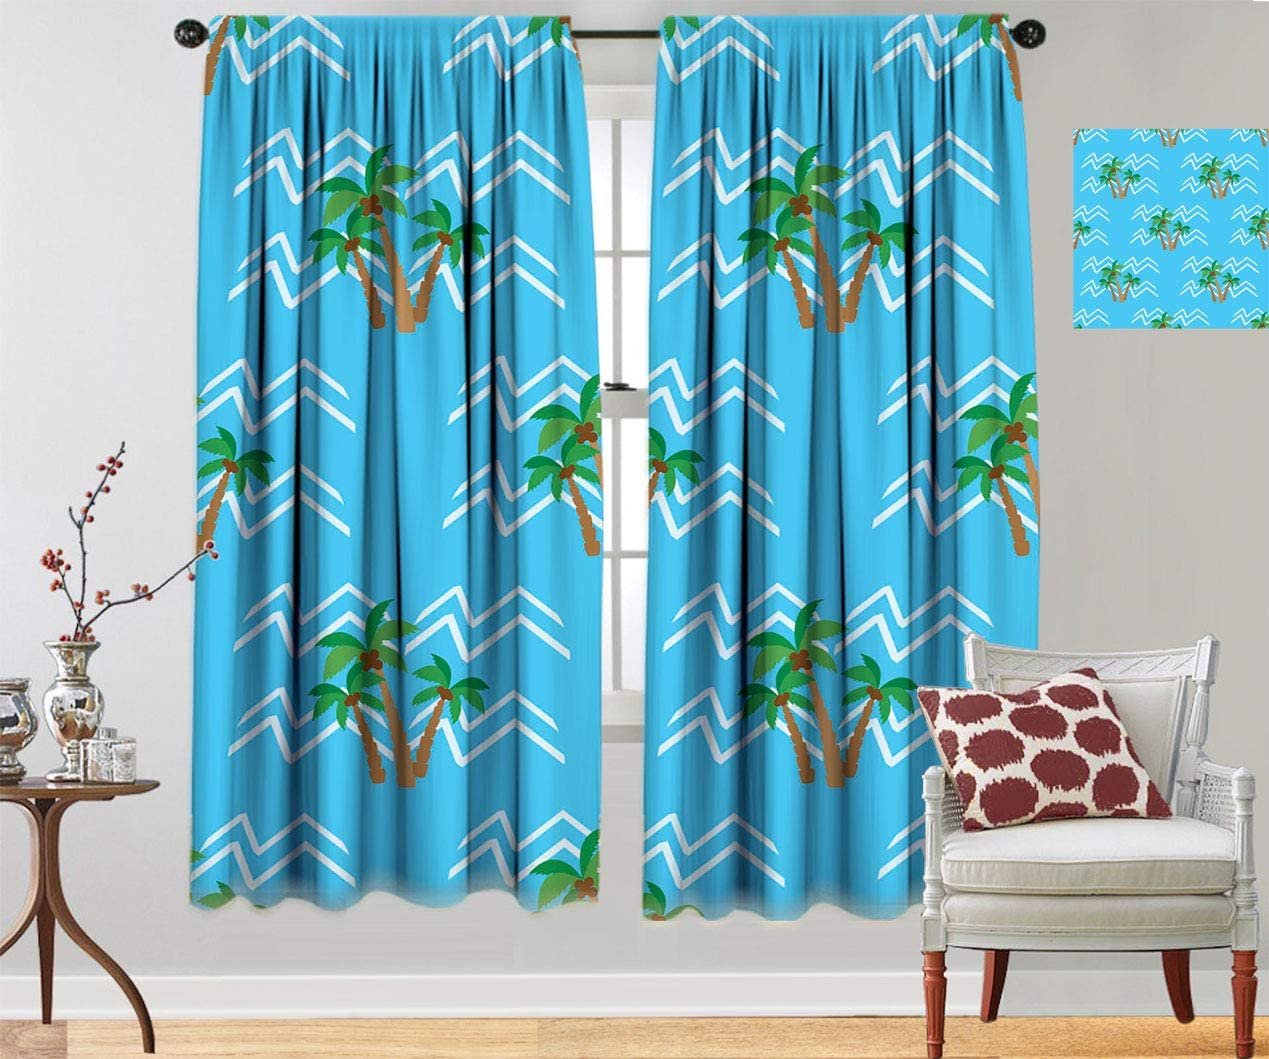 Baltimore Mall Sea Blackout Curtain High quality new Panels Tropical Coconut Pattern Trees Palm